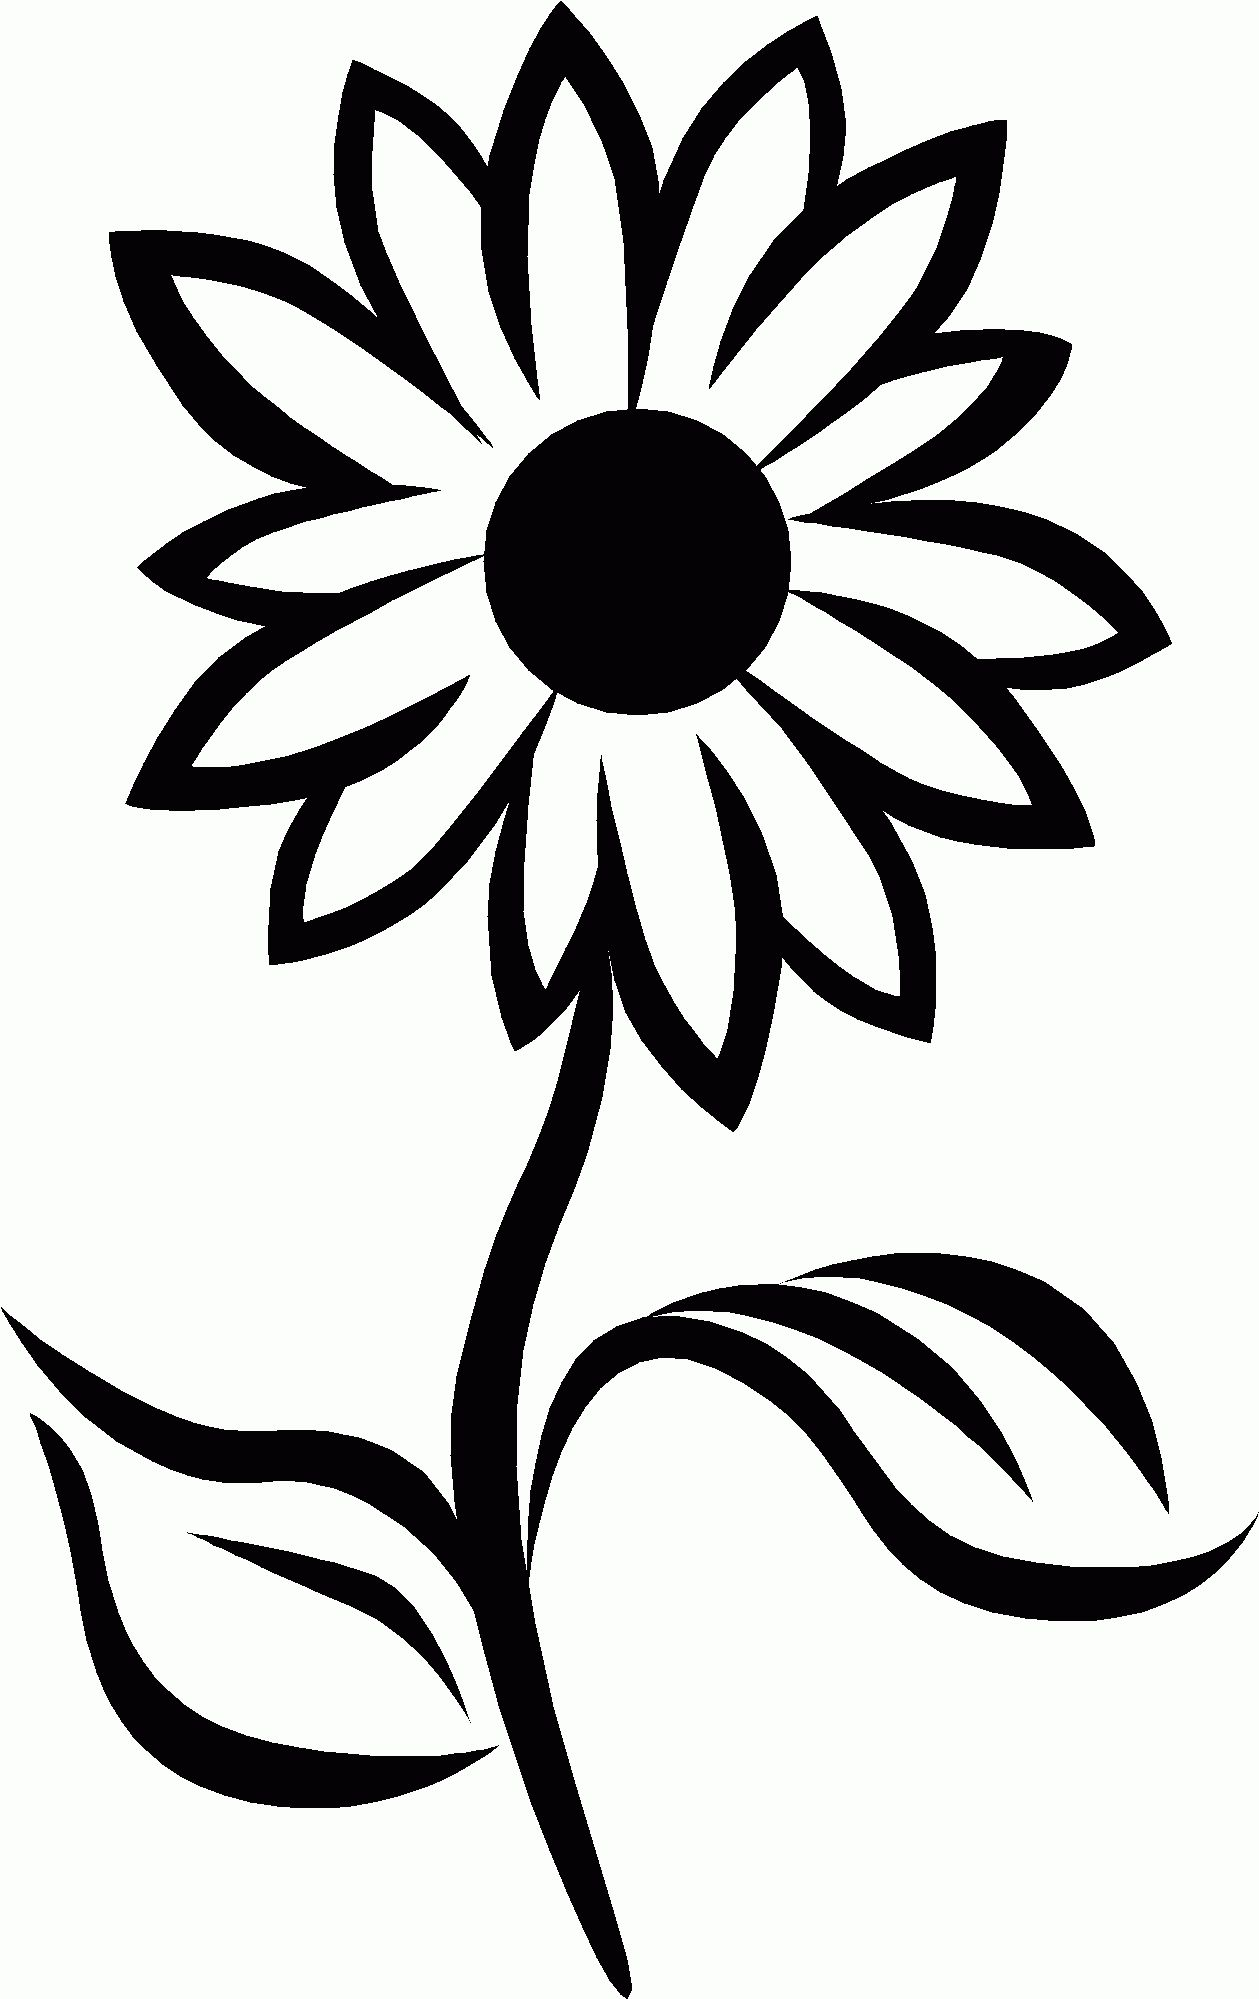 Black And White Sunflower Drawing Black Sunflower Drawing Sunflower Black And White White Sunflowers